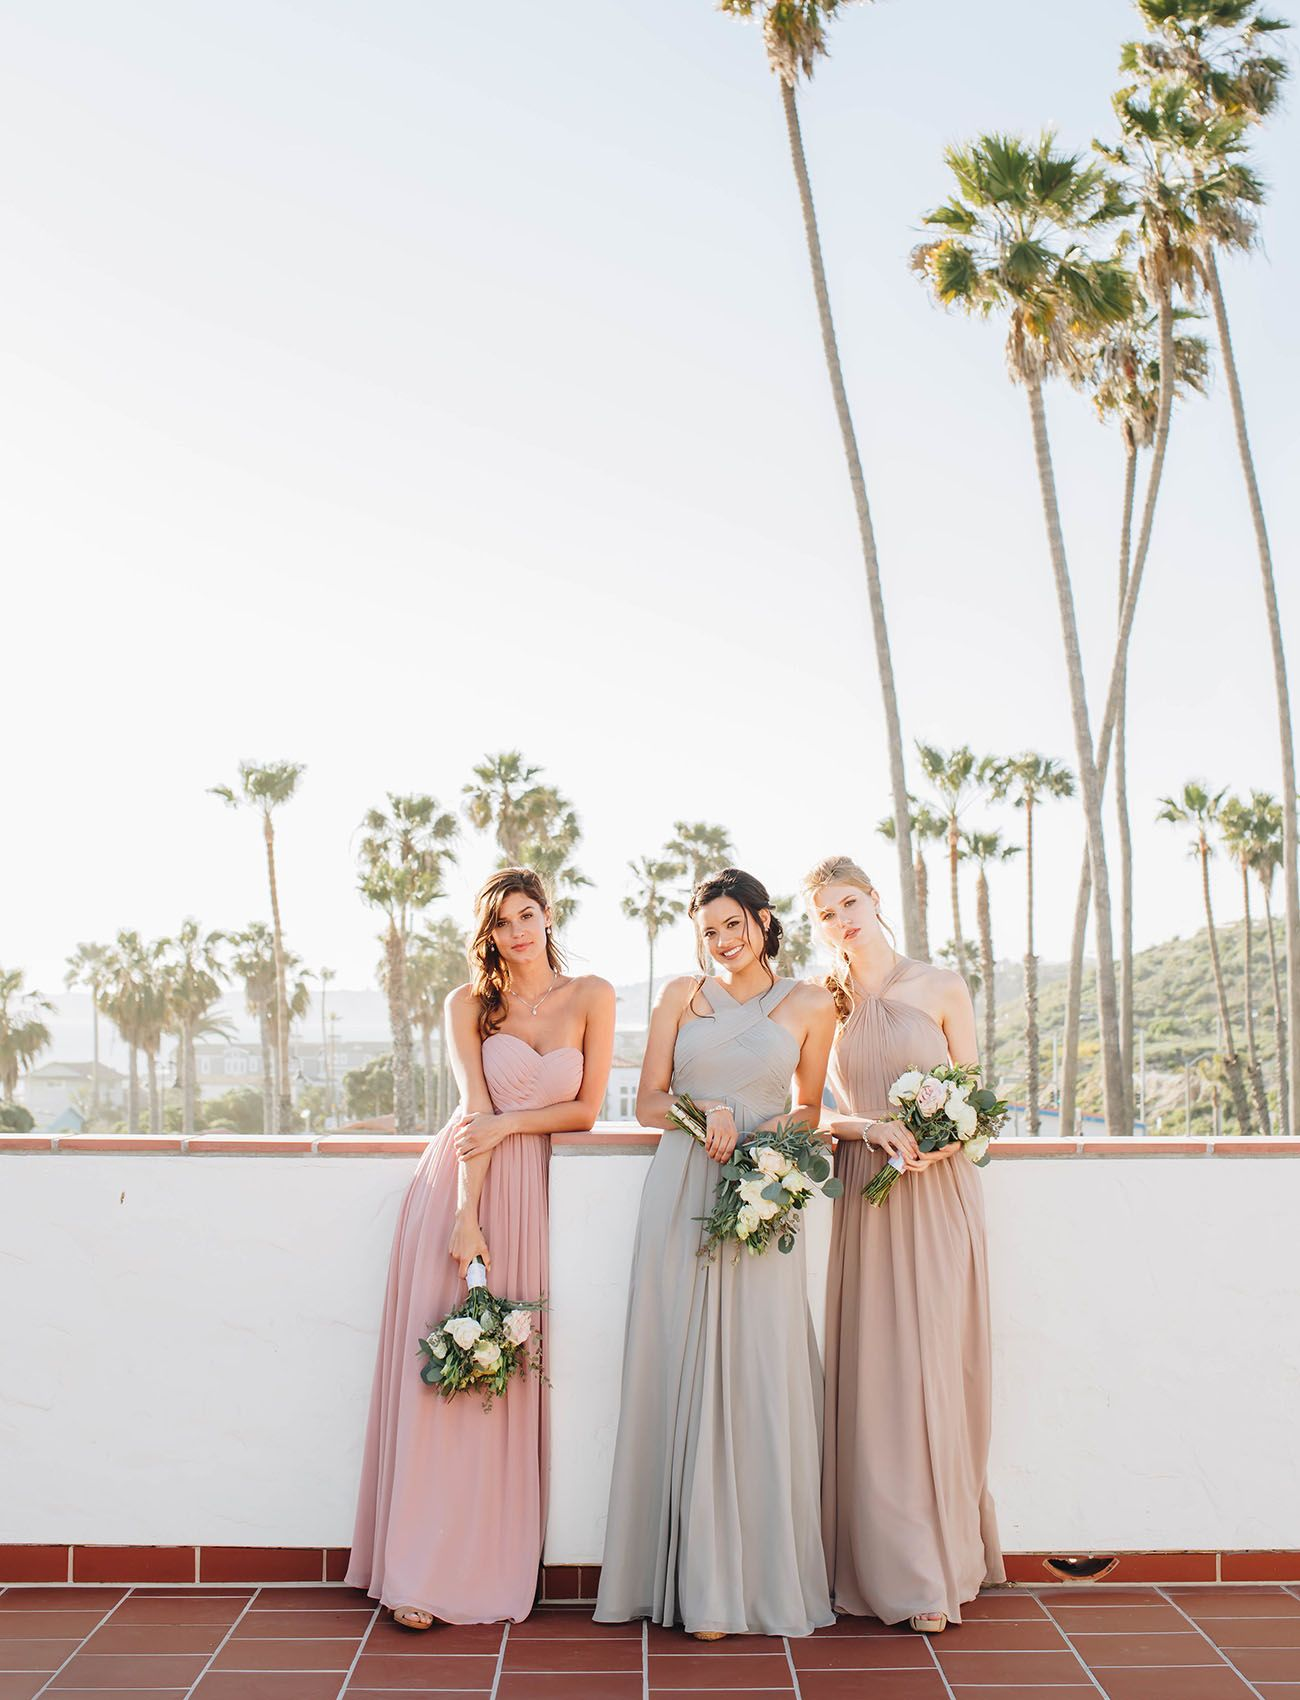 Dreamy dresses for the bride bridesmaids from azazie wedding affordable bridesmaid dress from azazie bridesmaid dress in dusty rose dusty sage ombrellifo Image collections